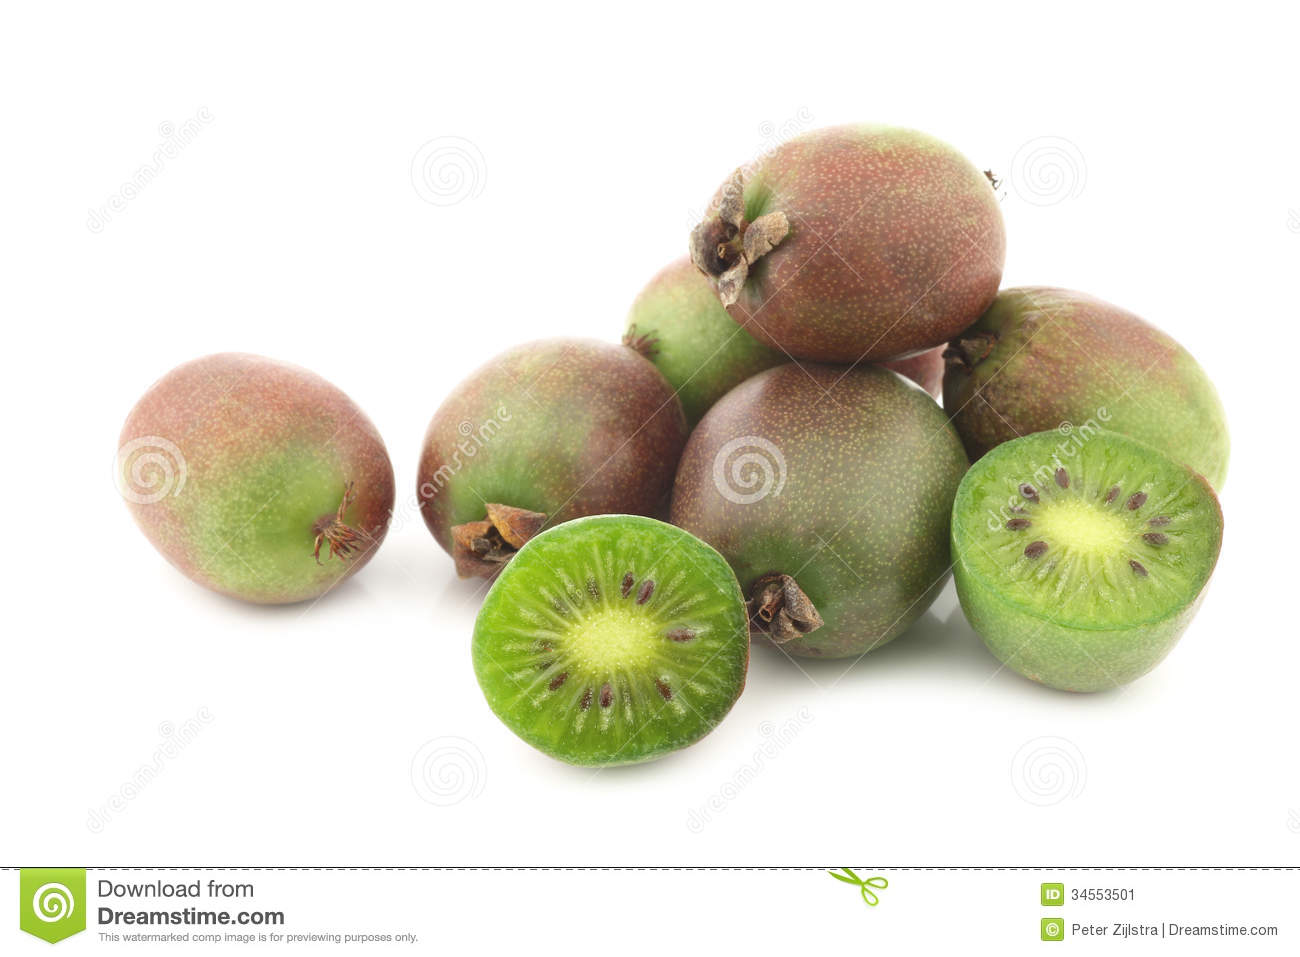 how to eat kiwi berries